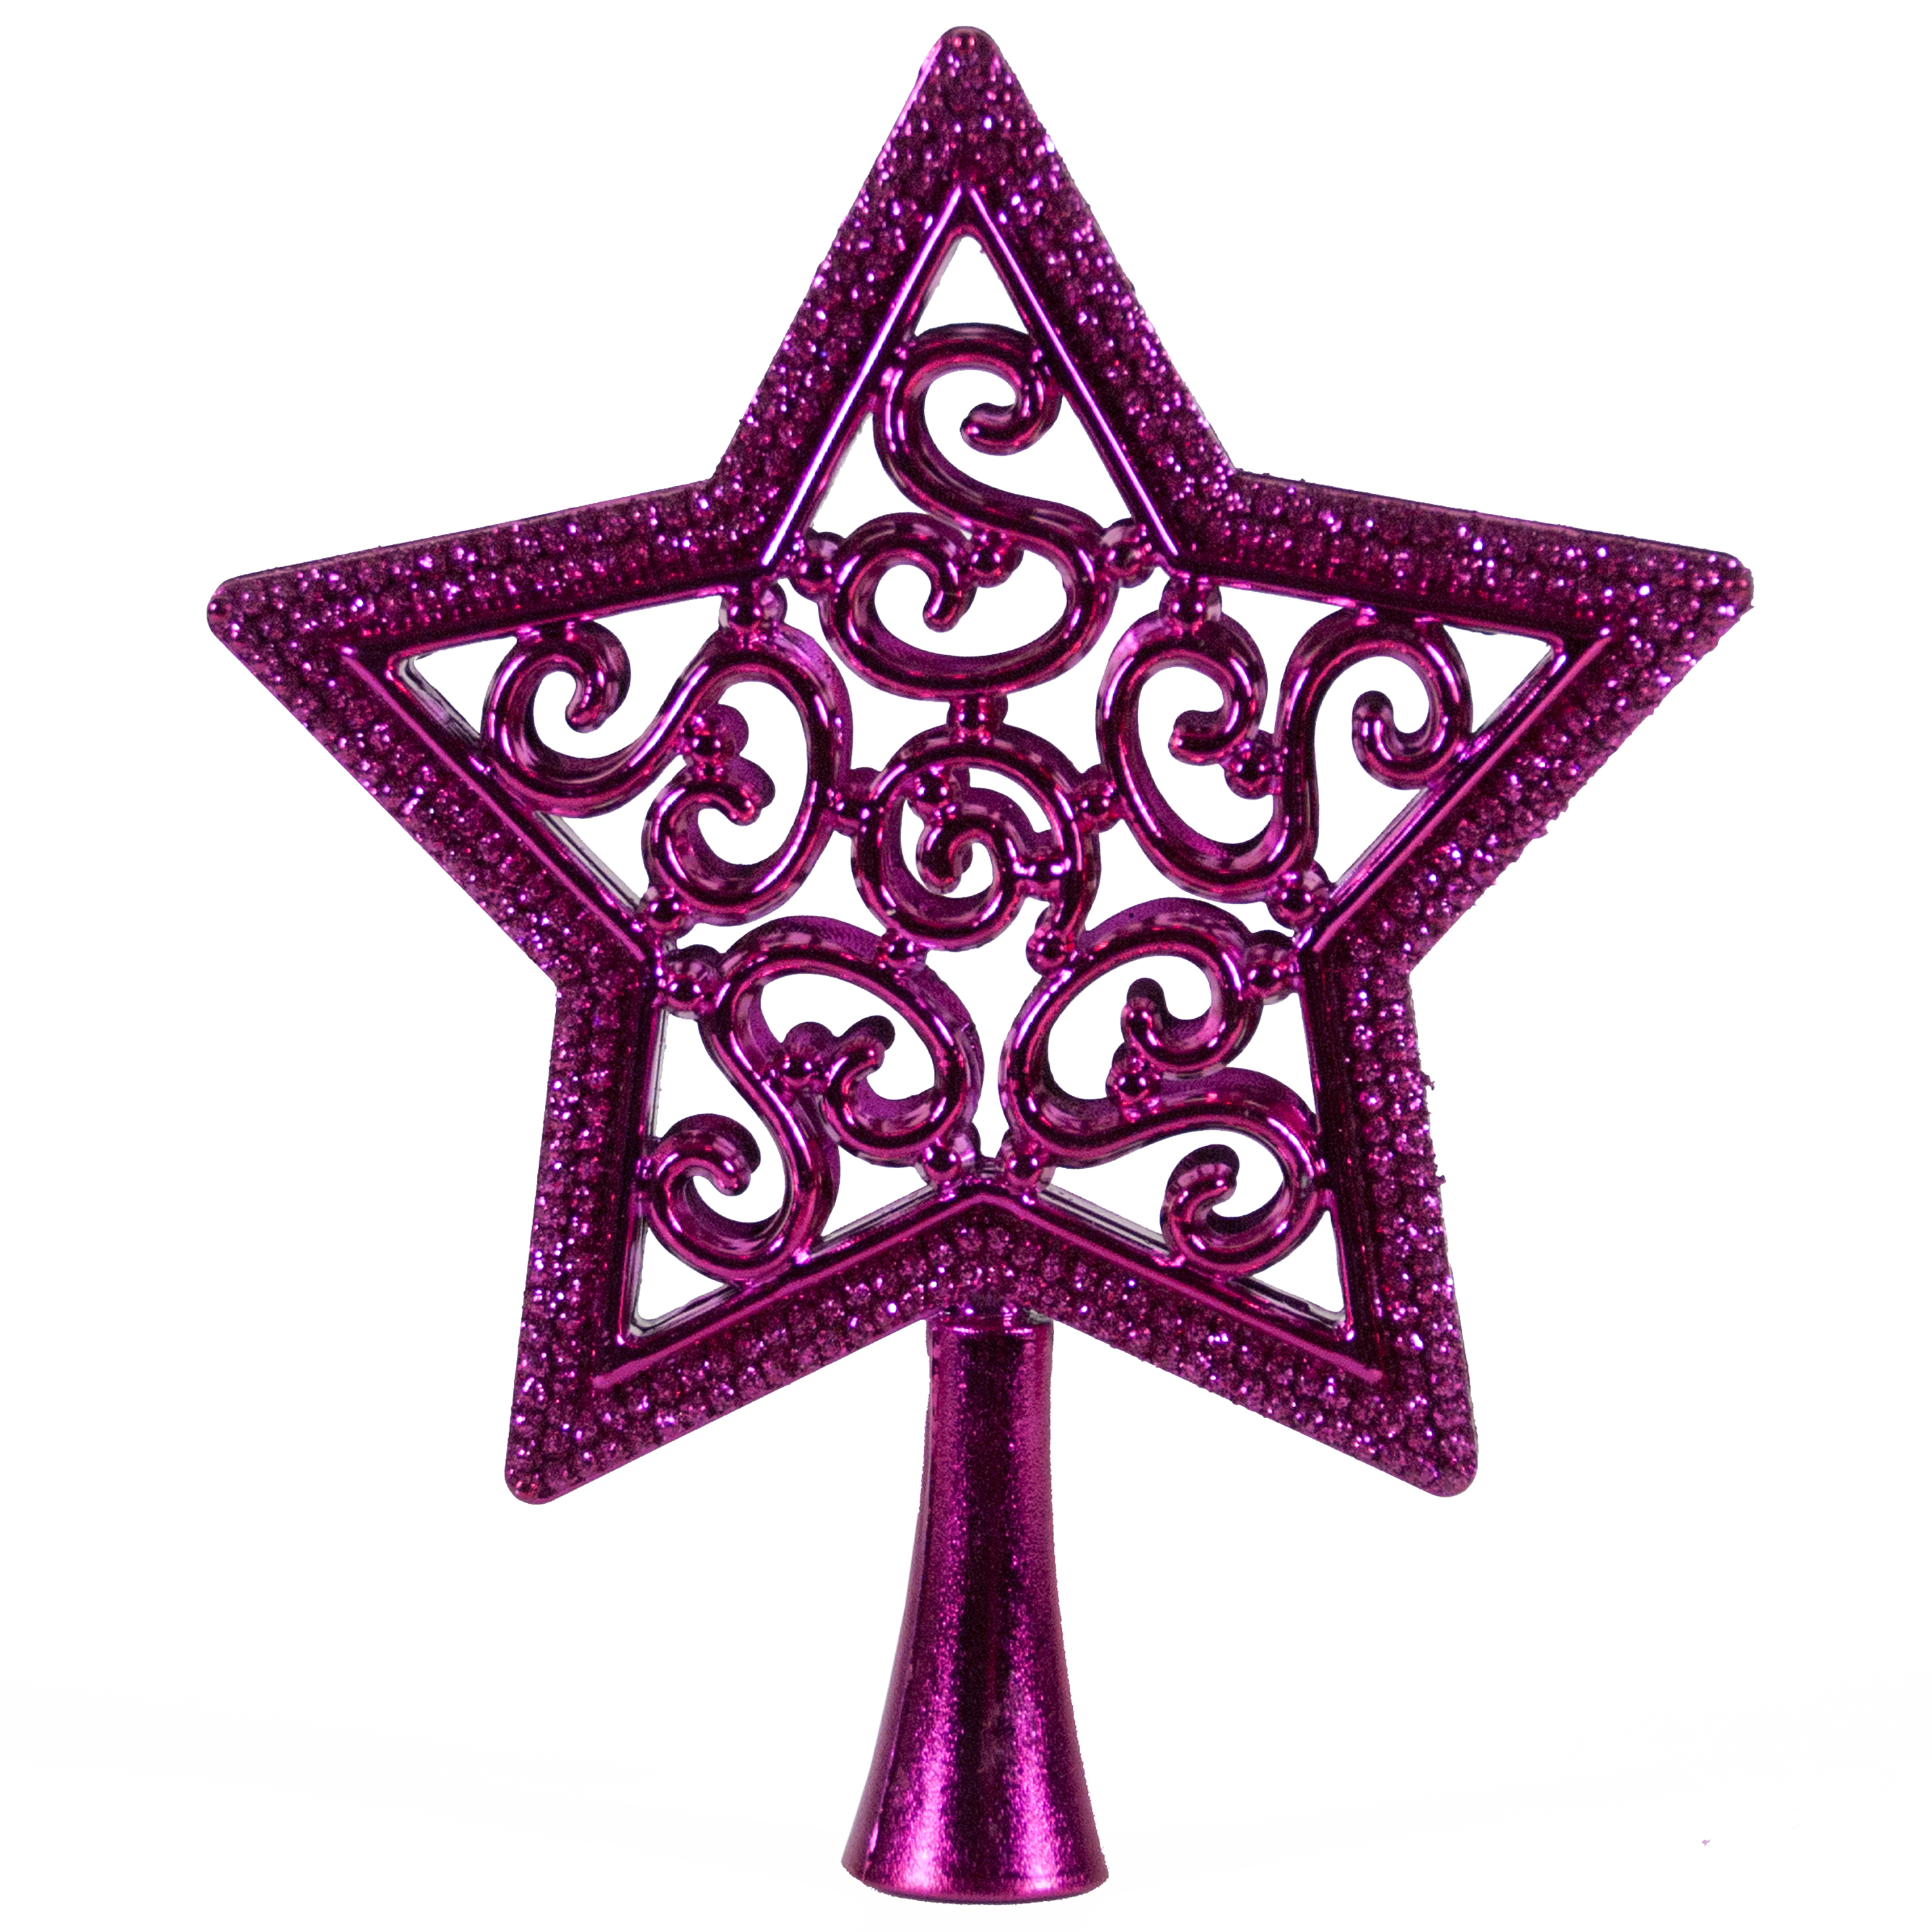 HOLIDAY TIME PINK STAR MINI TREE TOPPER, 5 INCH